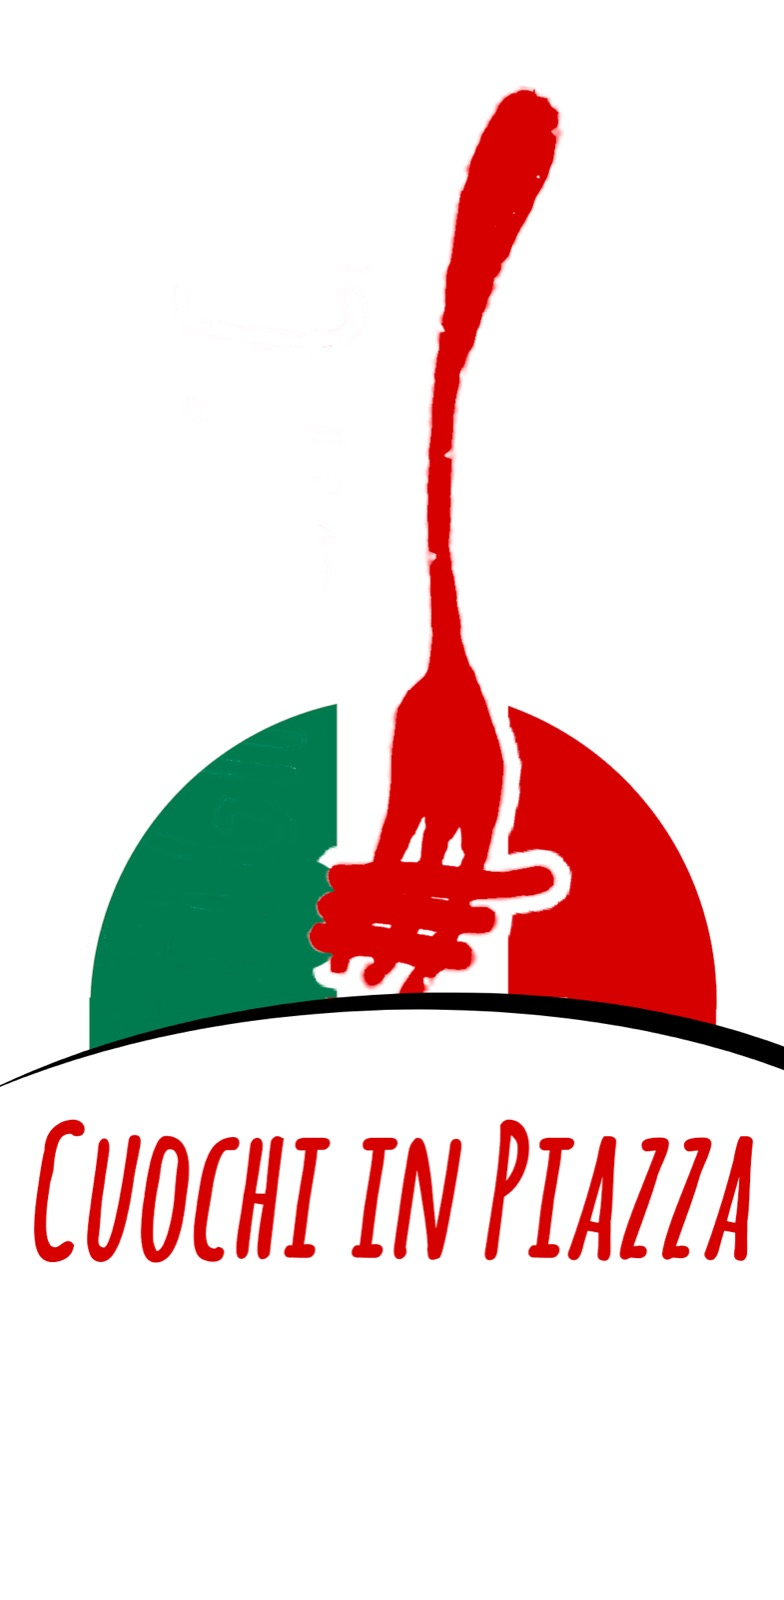 CUOCHI IN PIAZZA_logo di Fight Eat Club